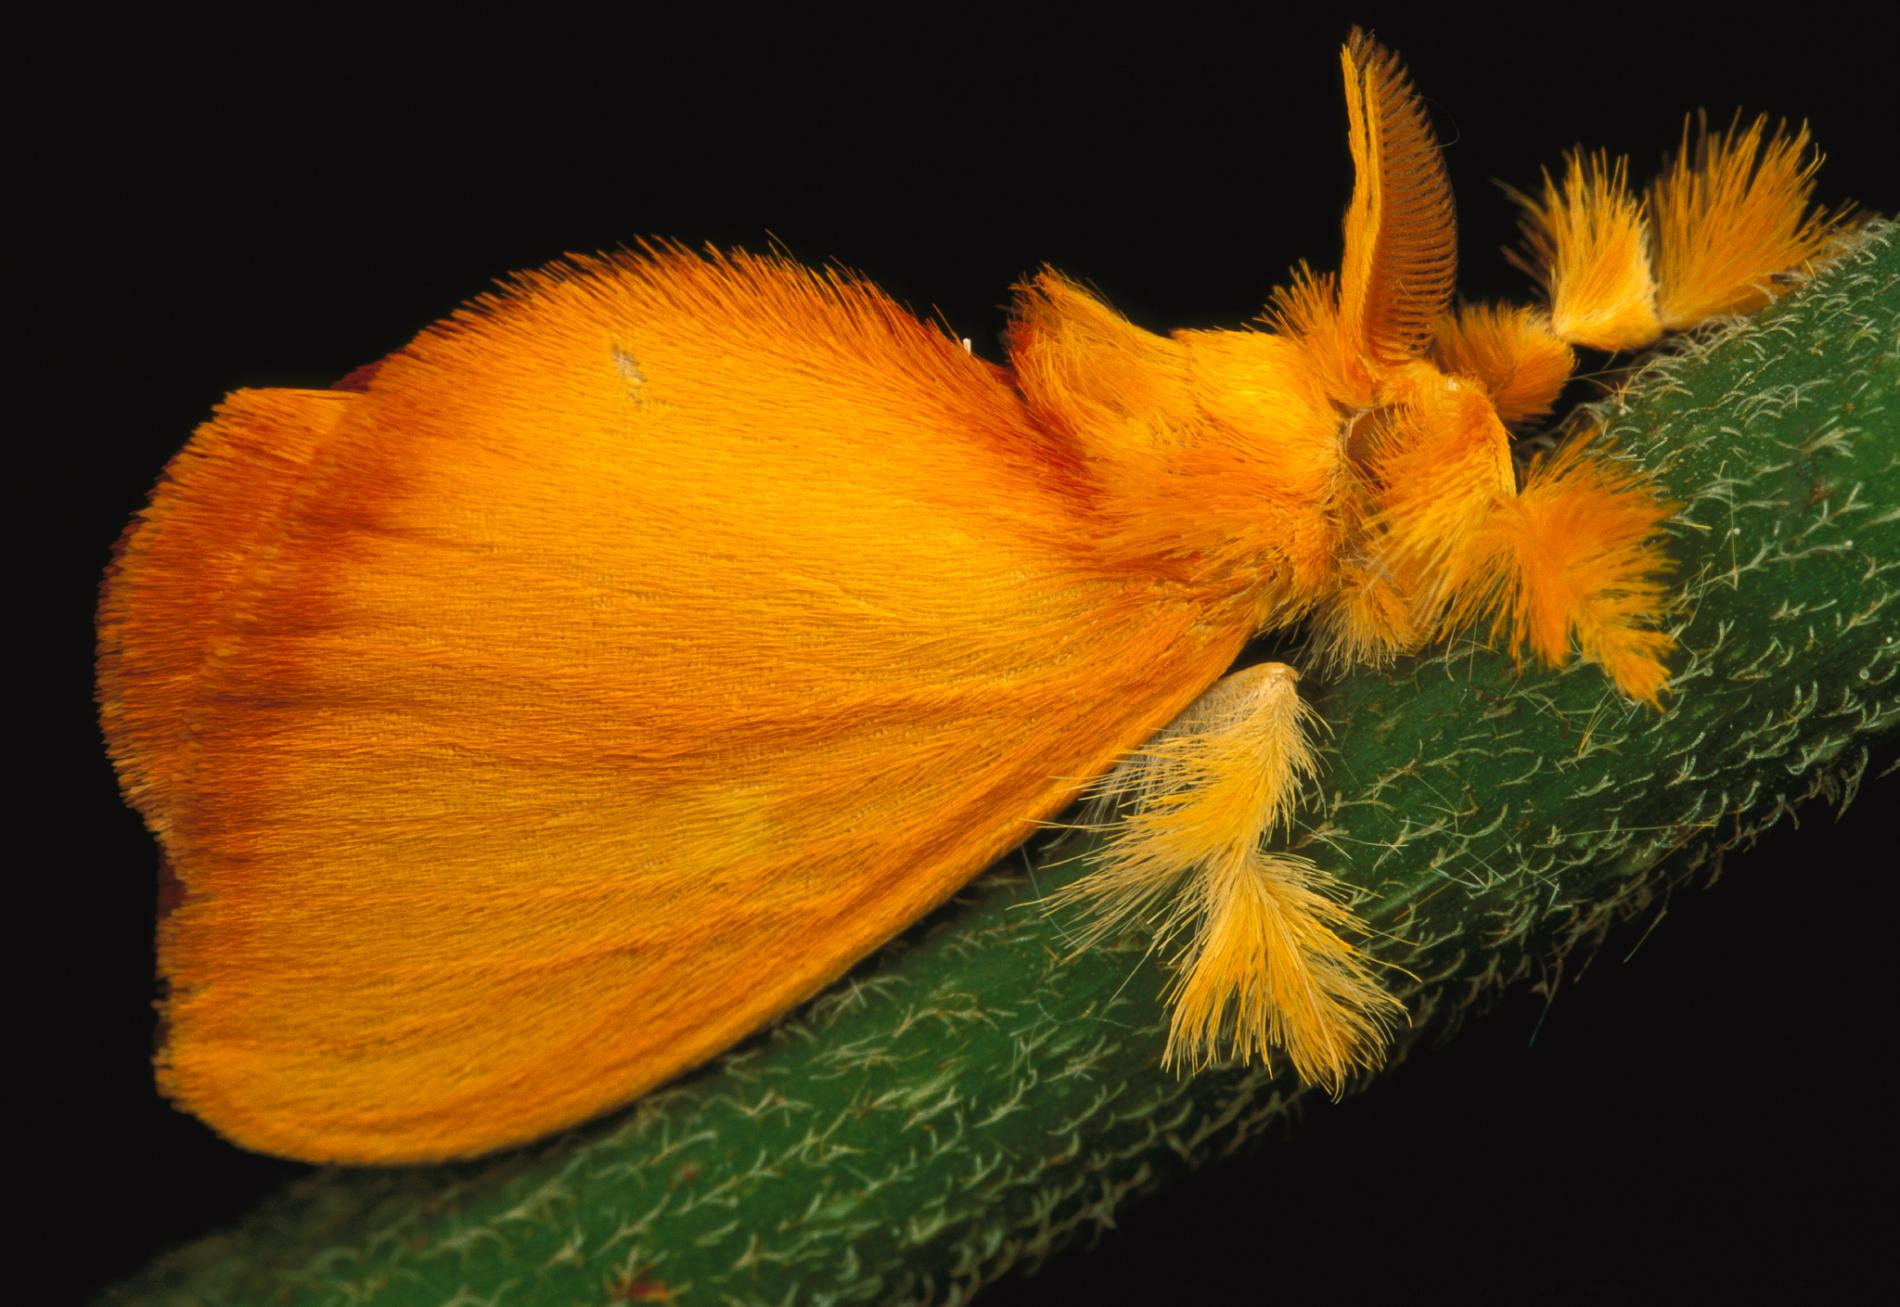 Fuzzy Jewel This tropical jewel moth, Acraga coa, is found mostly in Central America. Jewel moths undergo a spectacular transformation: From translucent larvae covered in protective goo to a vibrant fuzzy flier.